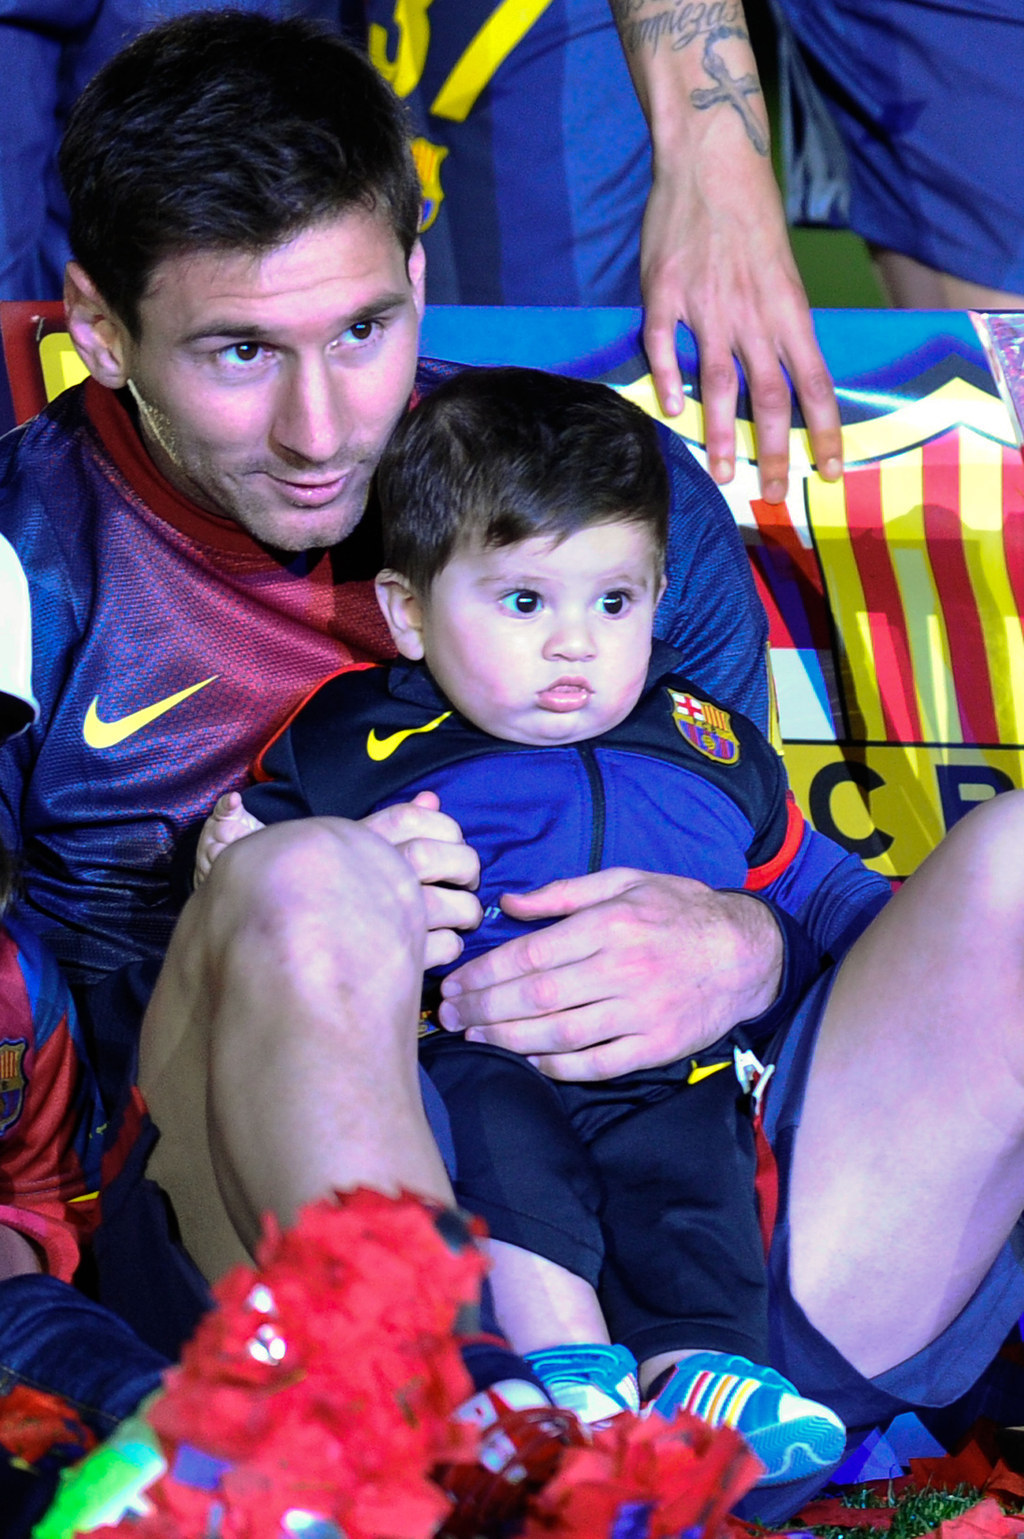 14 Pictures That Prove Thiago And Lionel Messi Make The Cutest Pair Ever